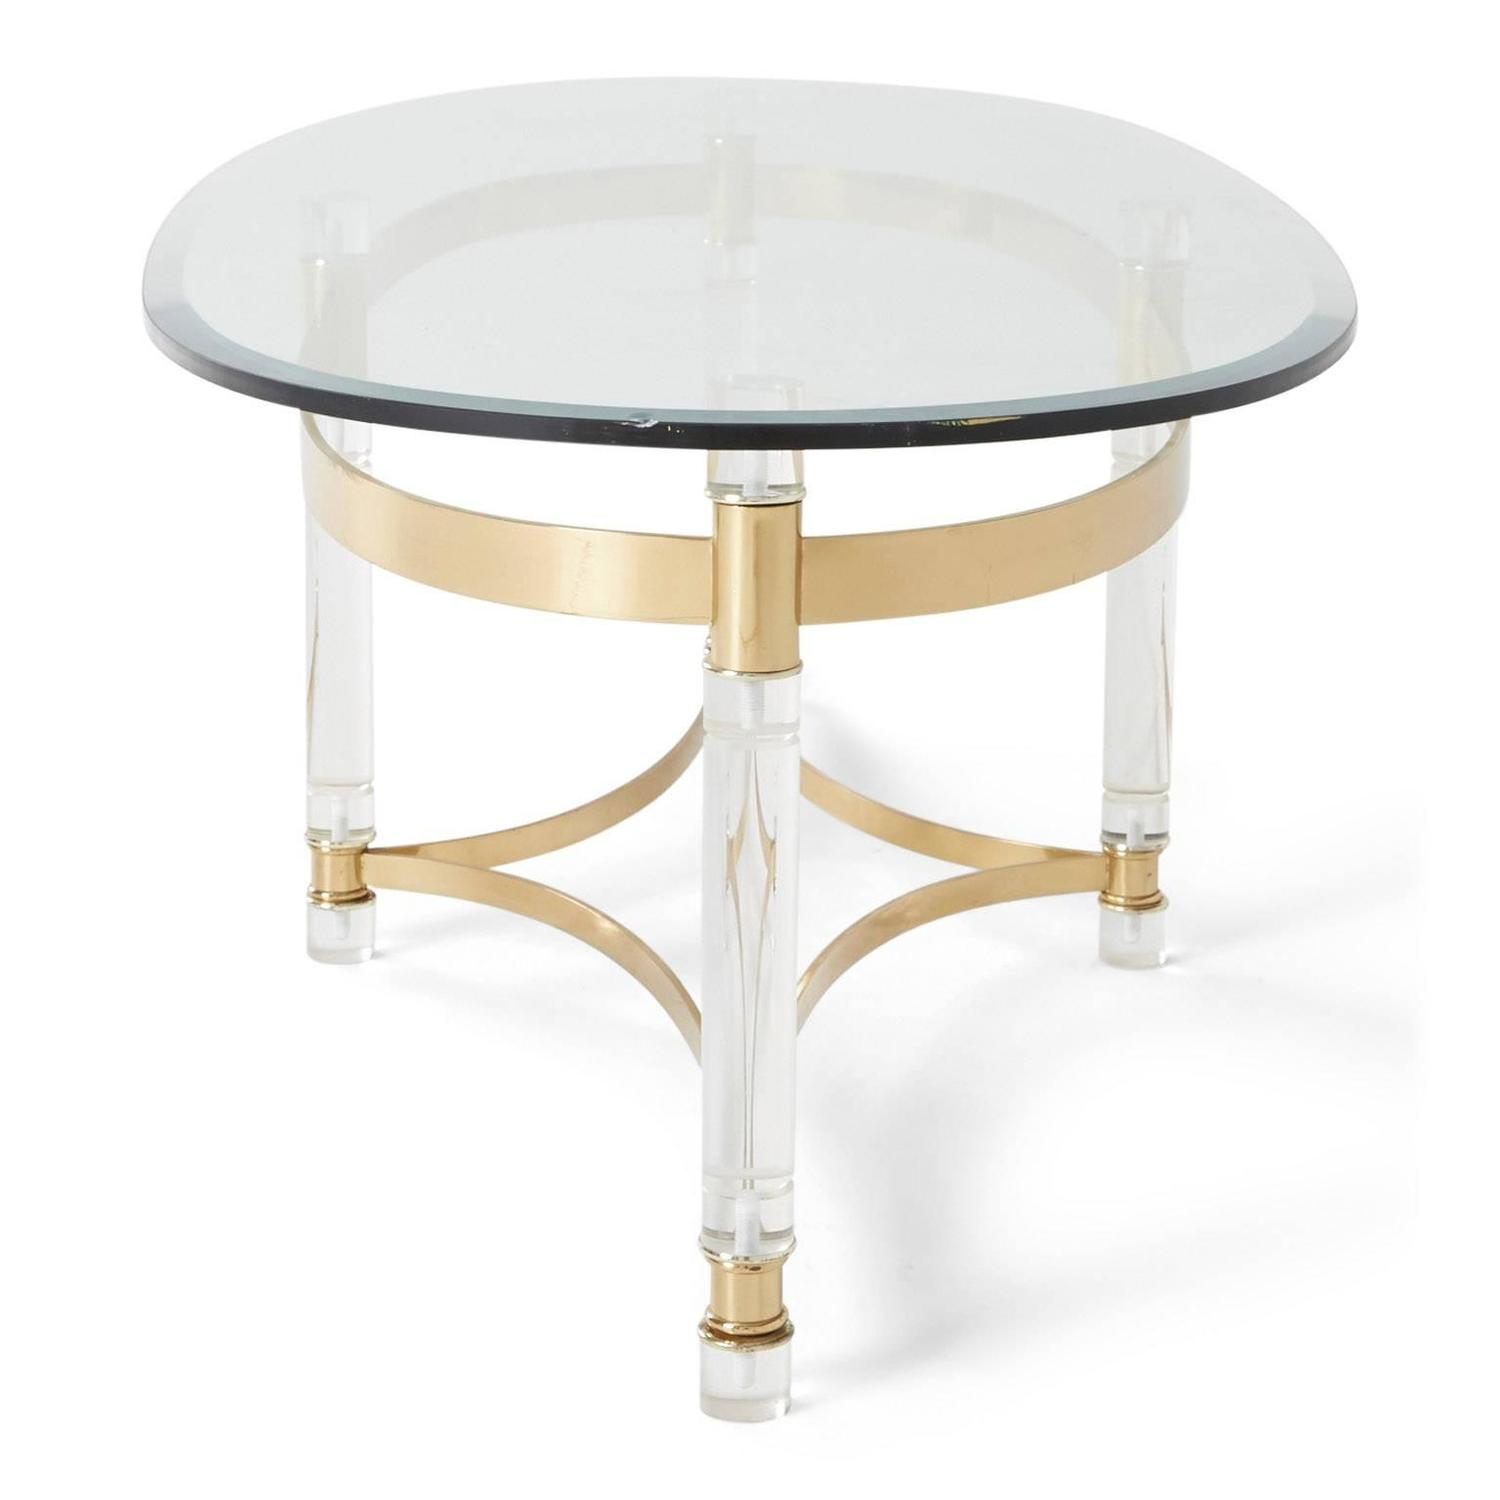 Charles Hollis Jones Style Lucite And Brass Regency Coffee Table Circa 1970 For Sale At 1stdibs